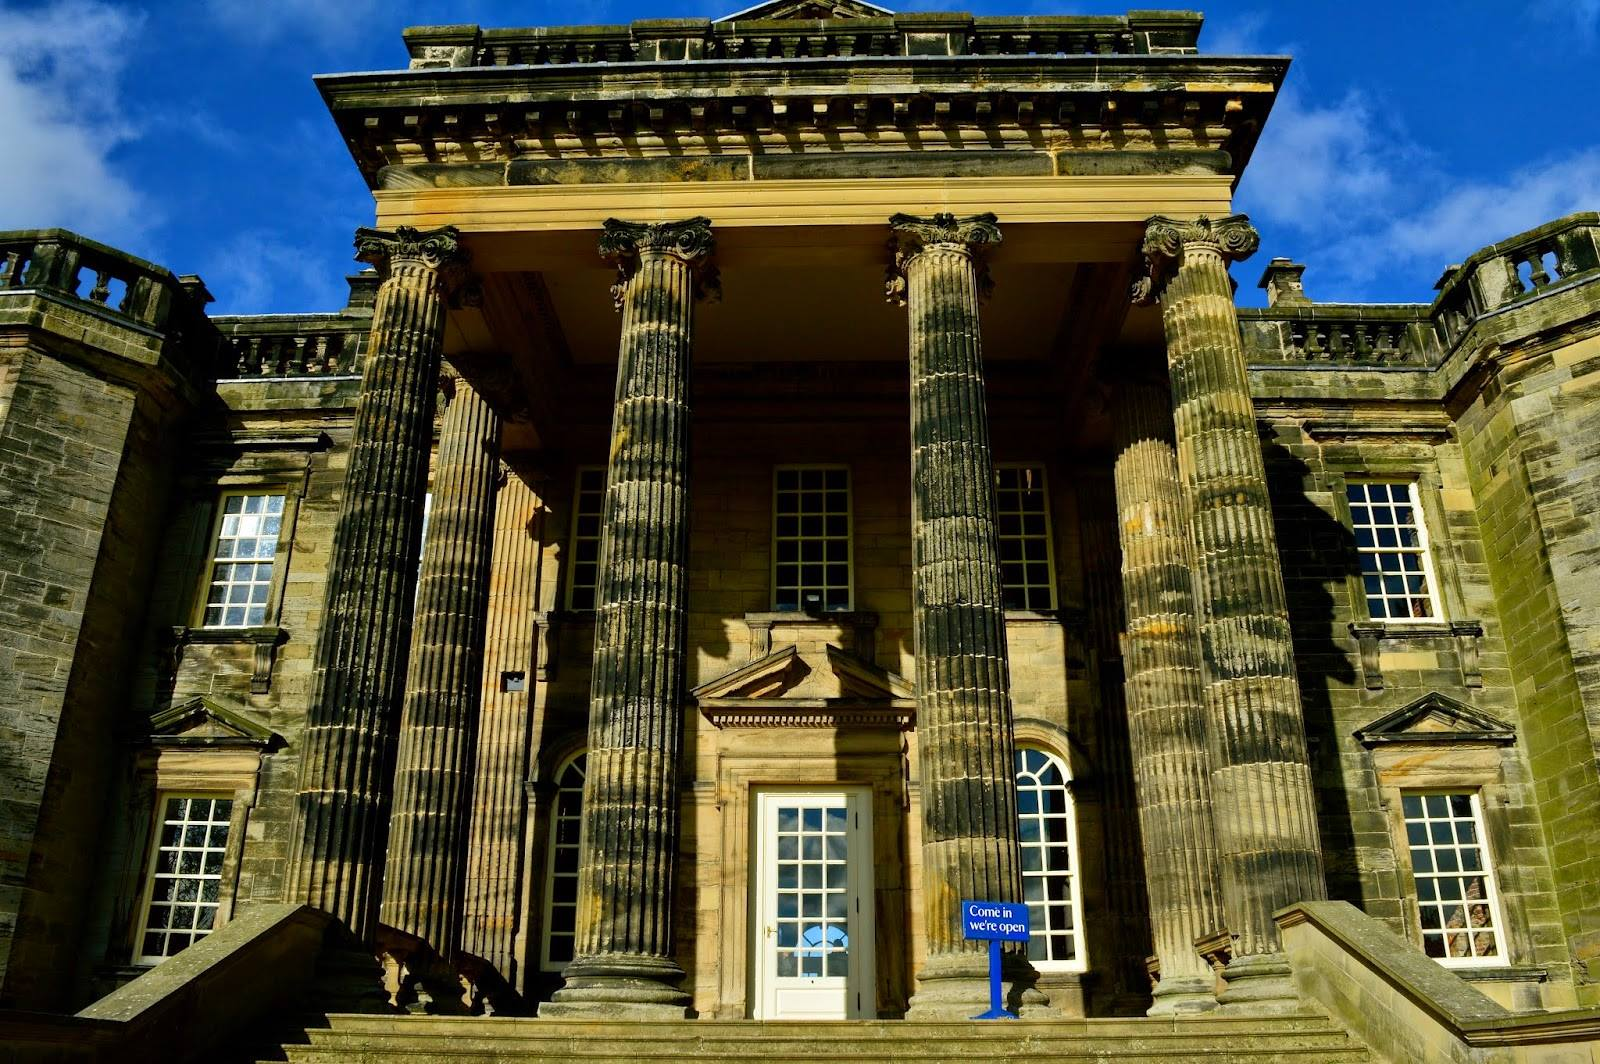 The Ultimate Guide to What's On in the North East for Kids | Summer Holidays 2018  - Seaton Delaval Hall